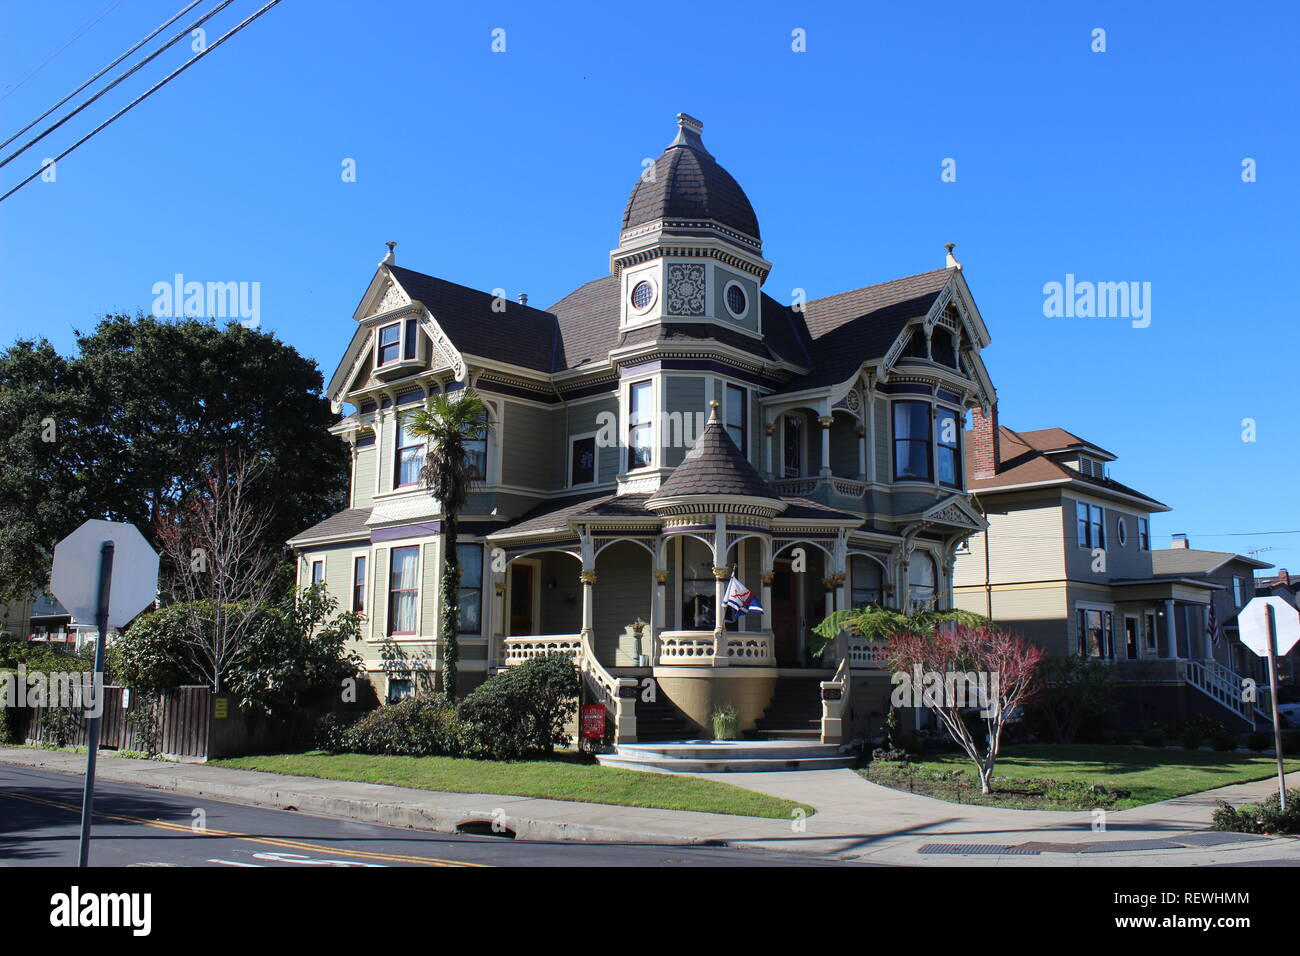 Queen Anne House, built 1893, Alameda, California - Stock Image